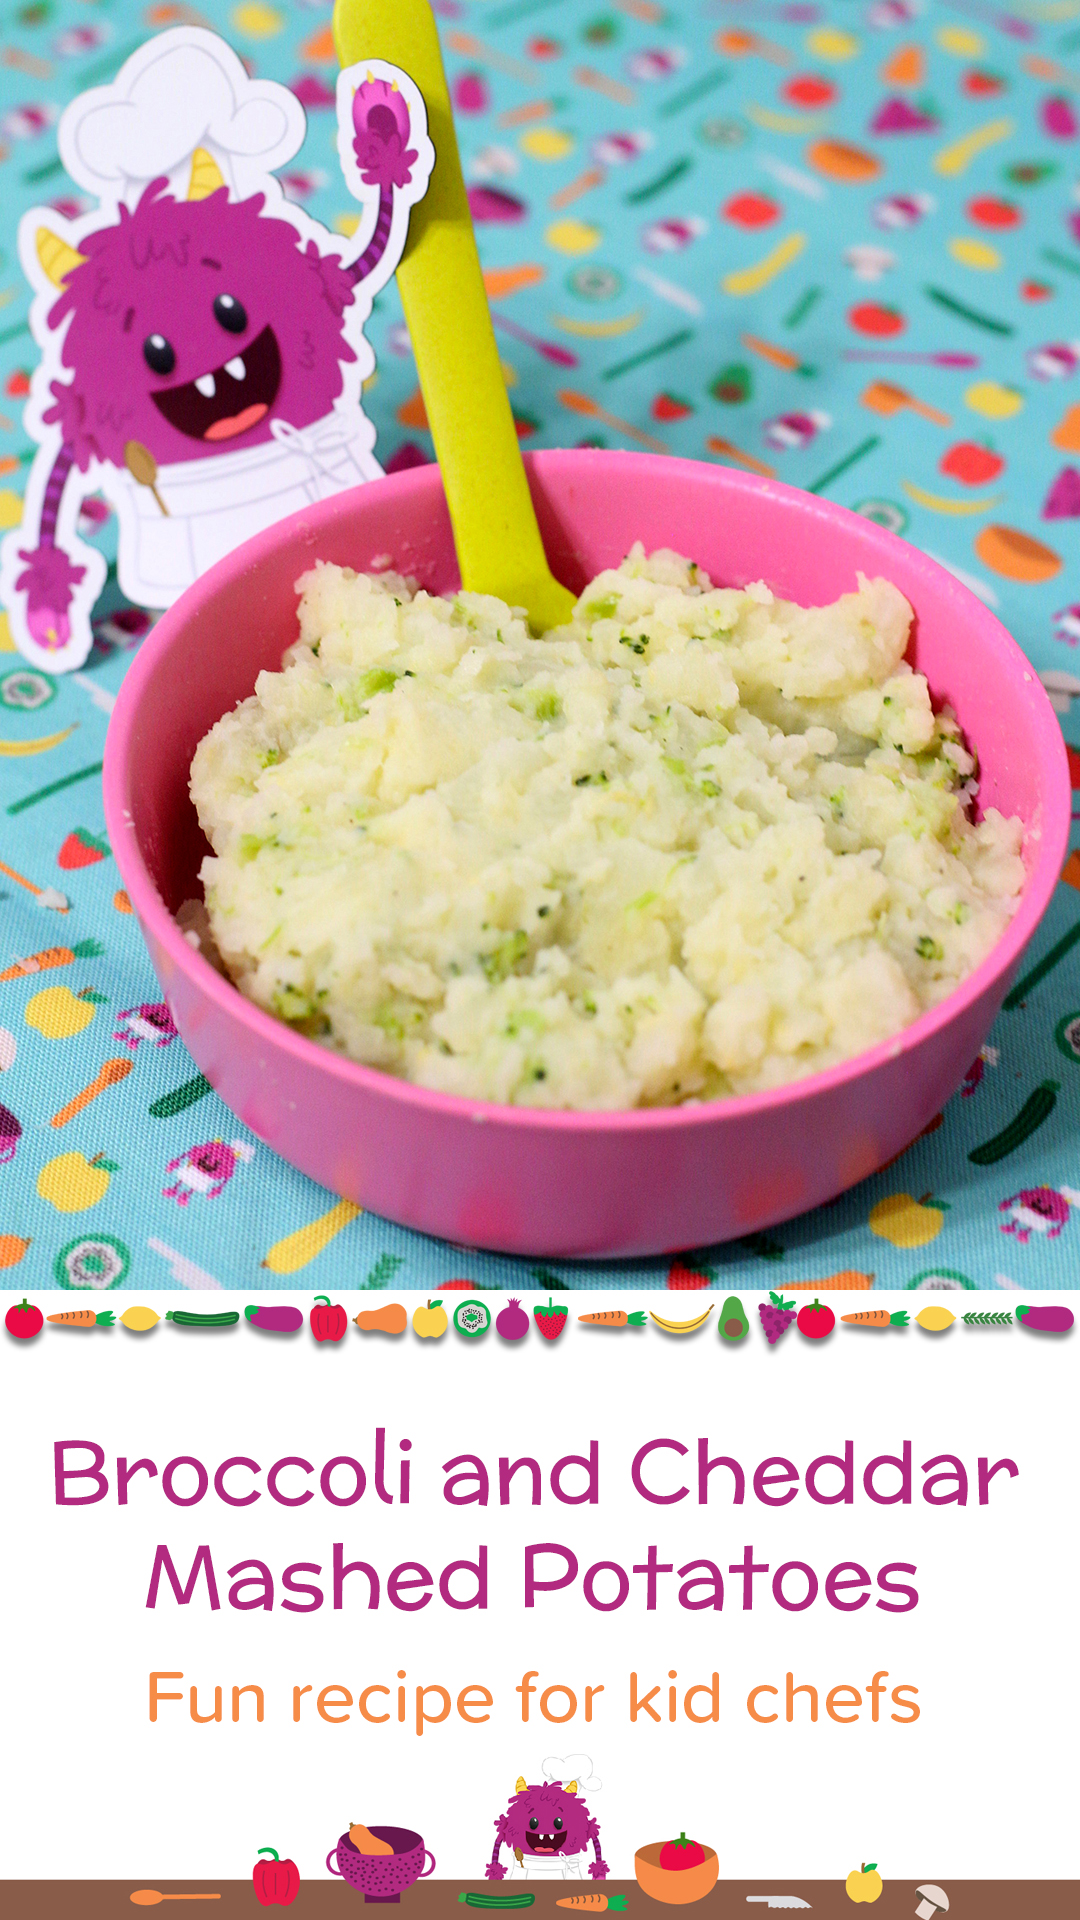 Broccoli and Cheddar Mashed Potatoes Pointerest.jpg